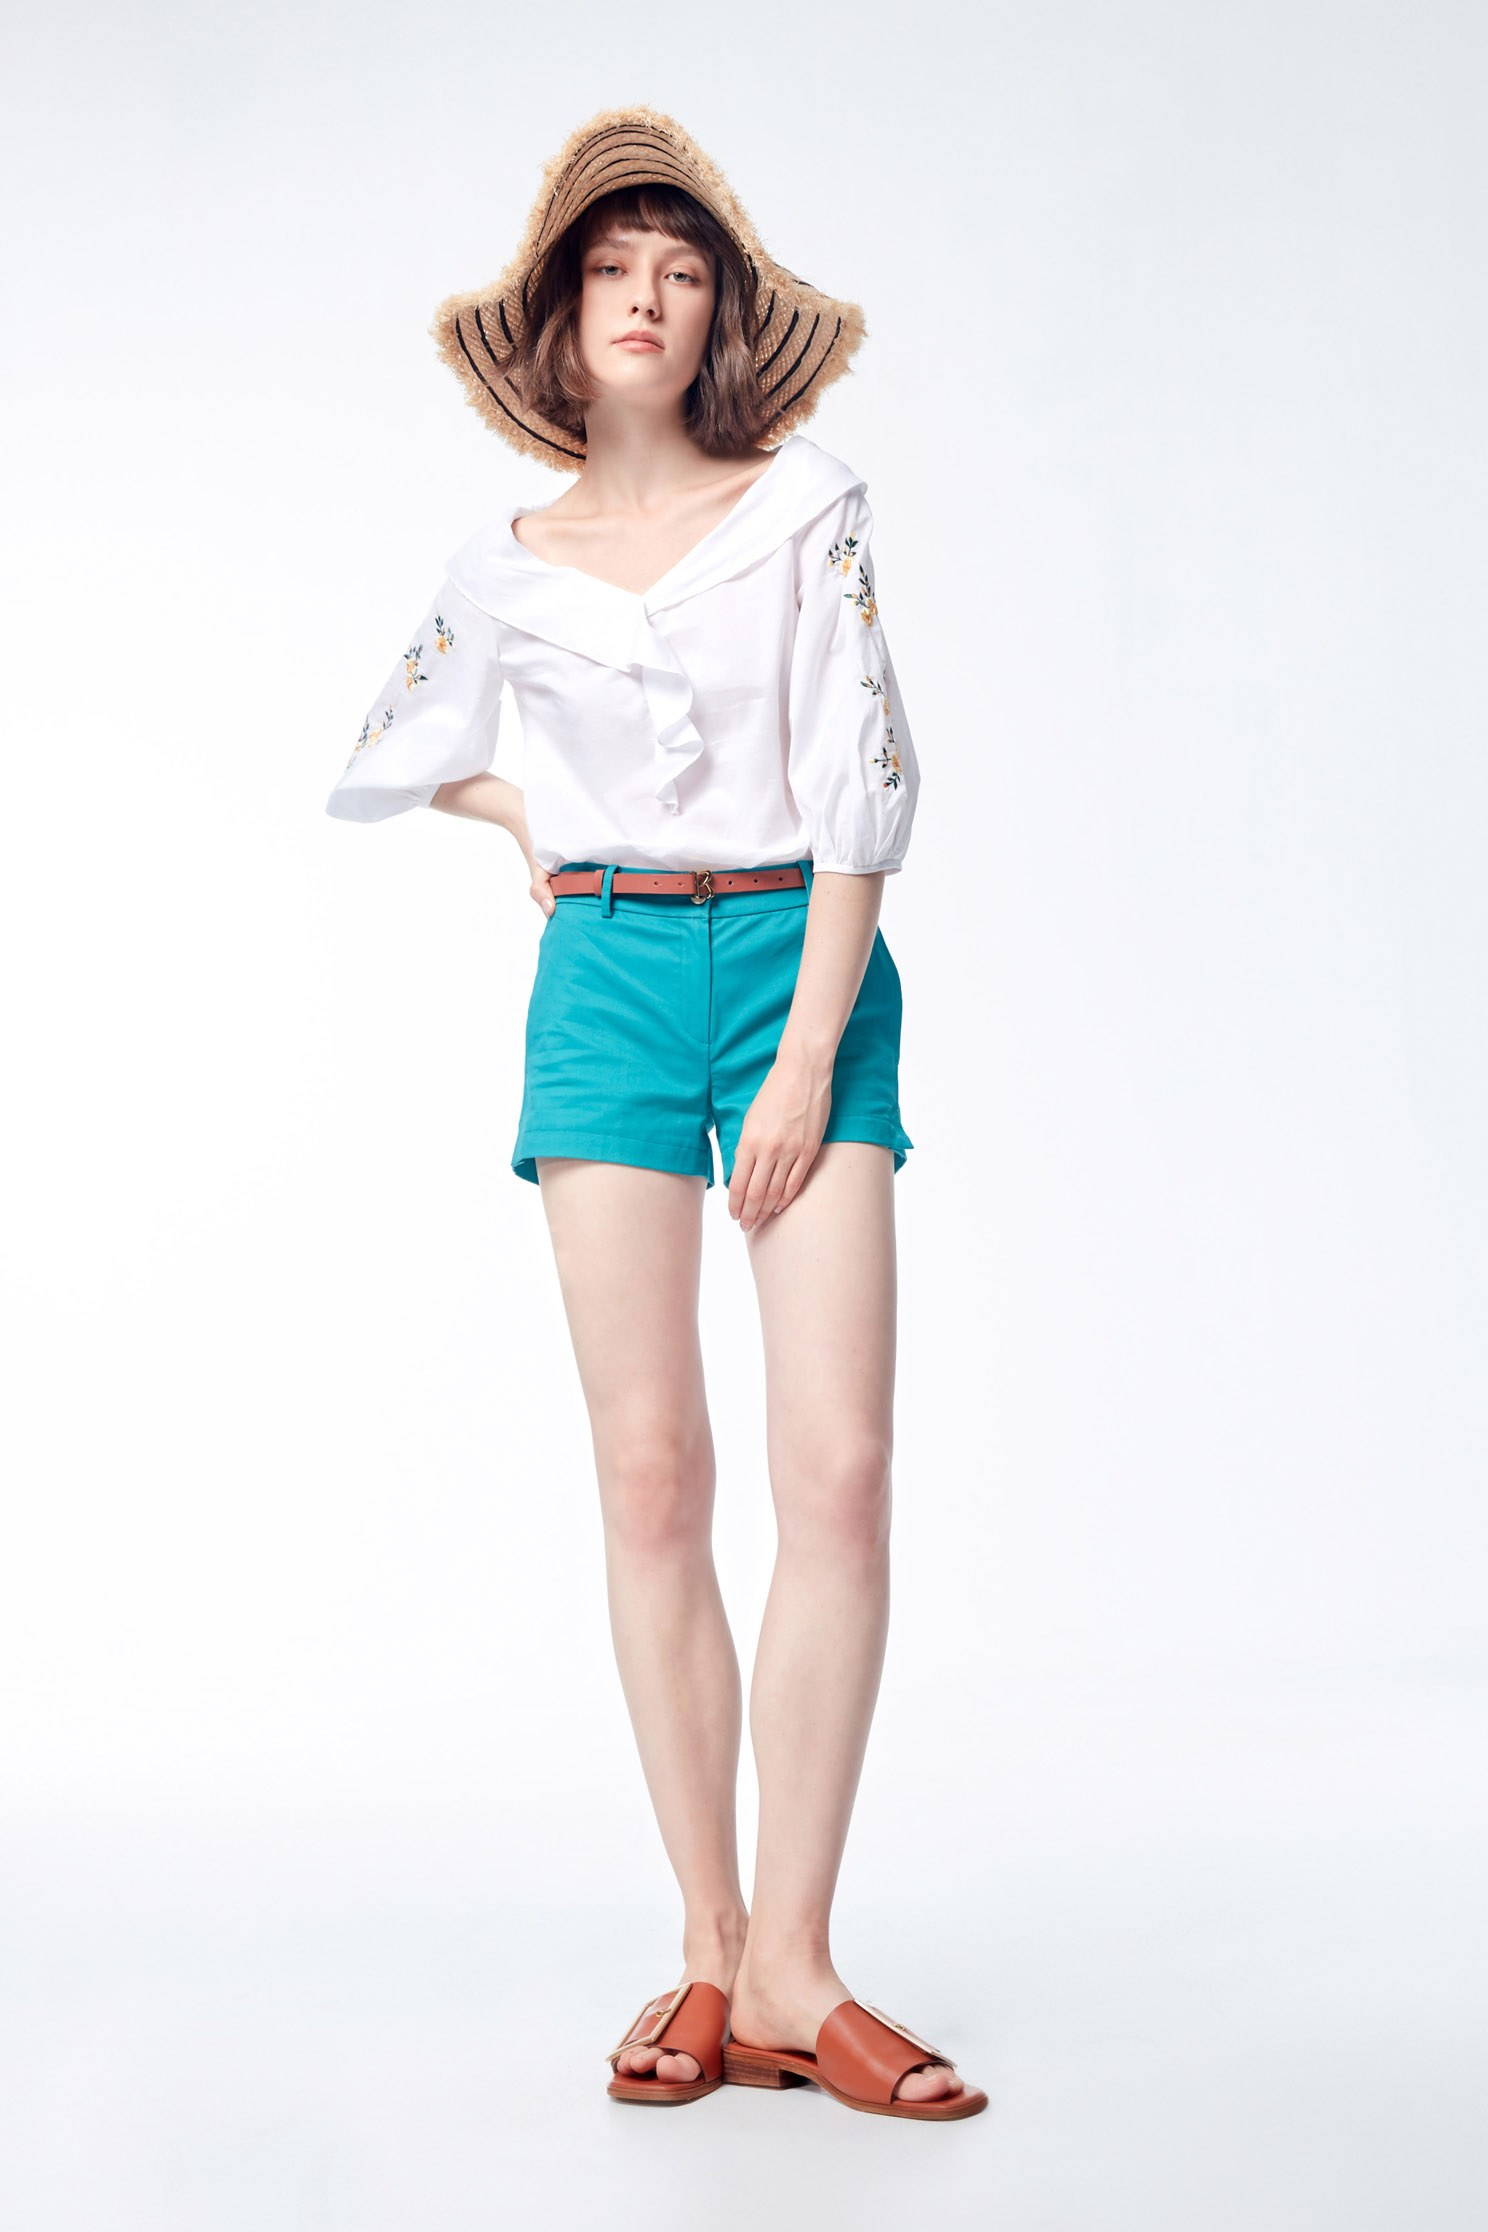 Blue-green shorts with button,shorts,cotton,pants